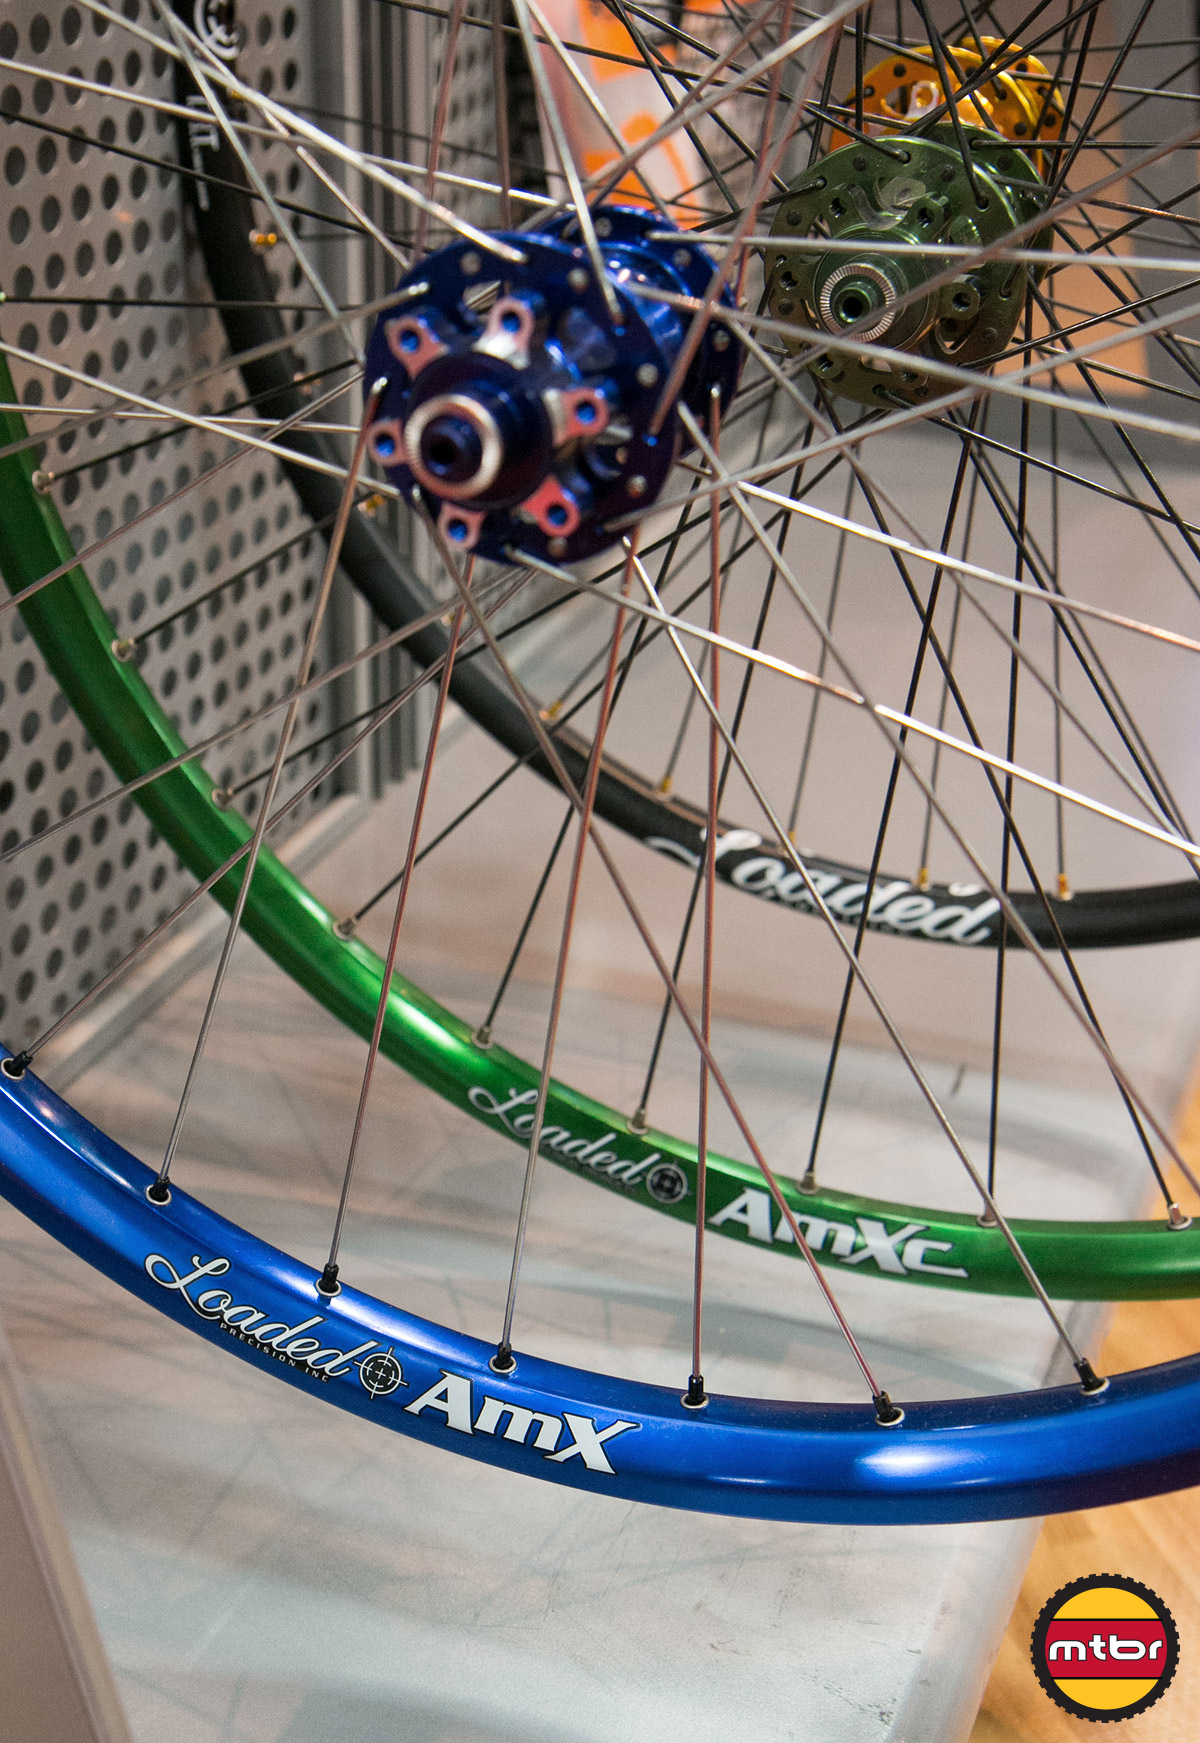 Loaded AmXc & AmX Wheelsets